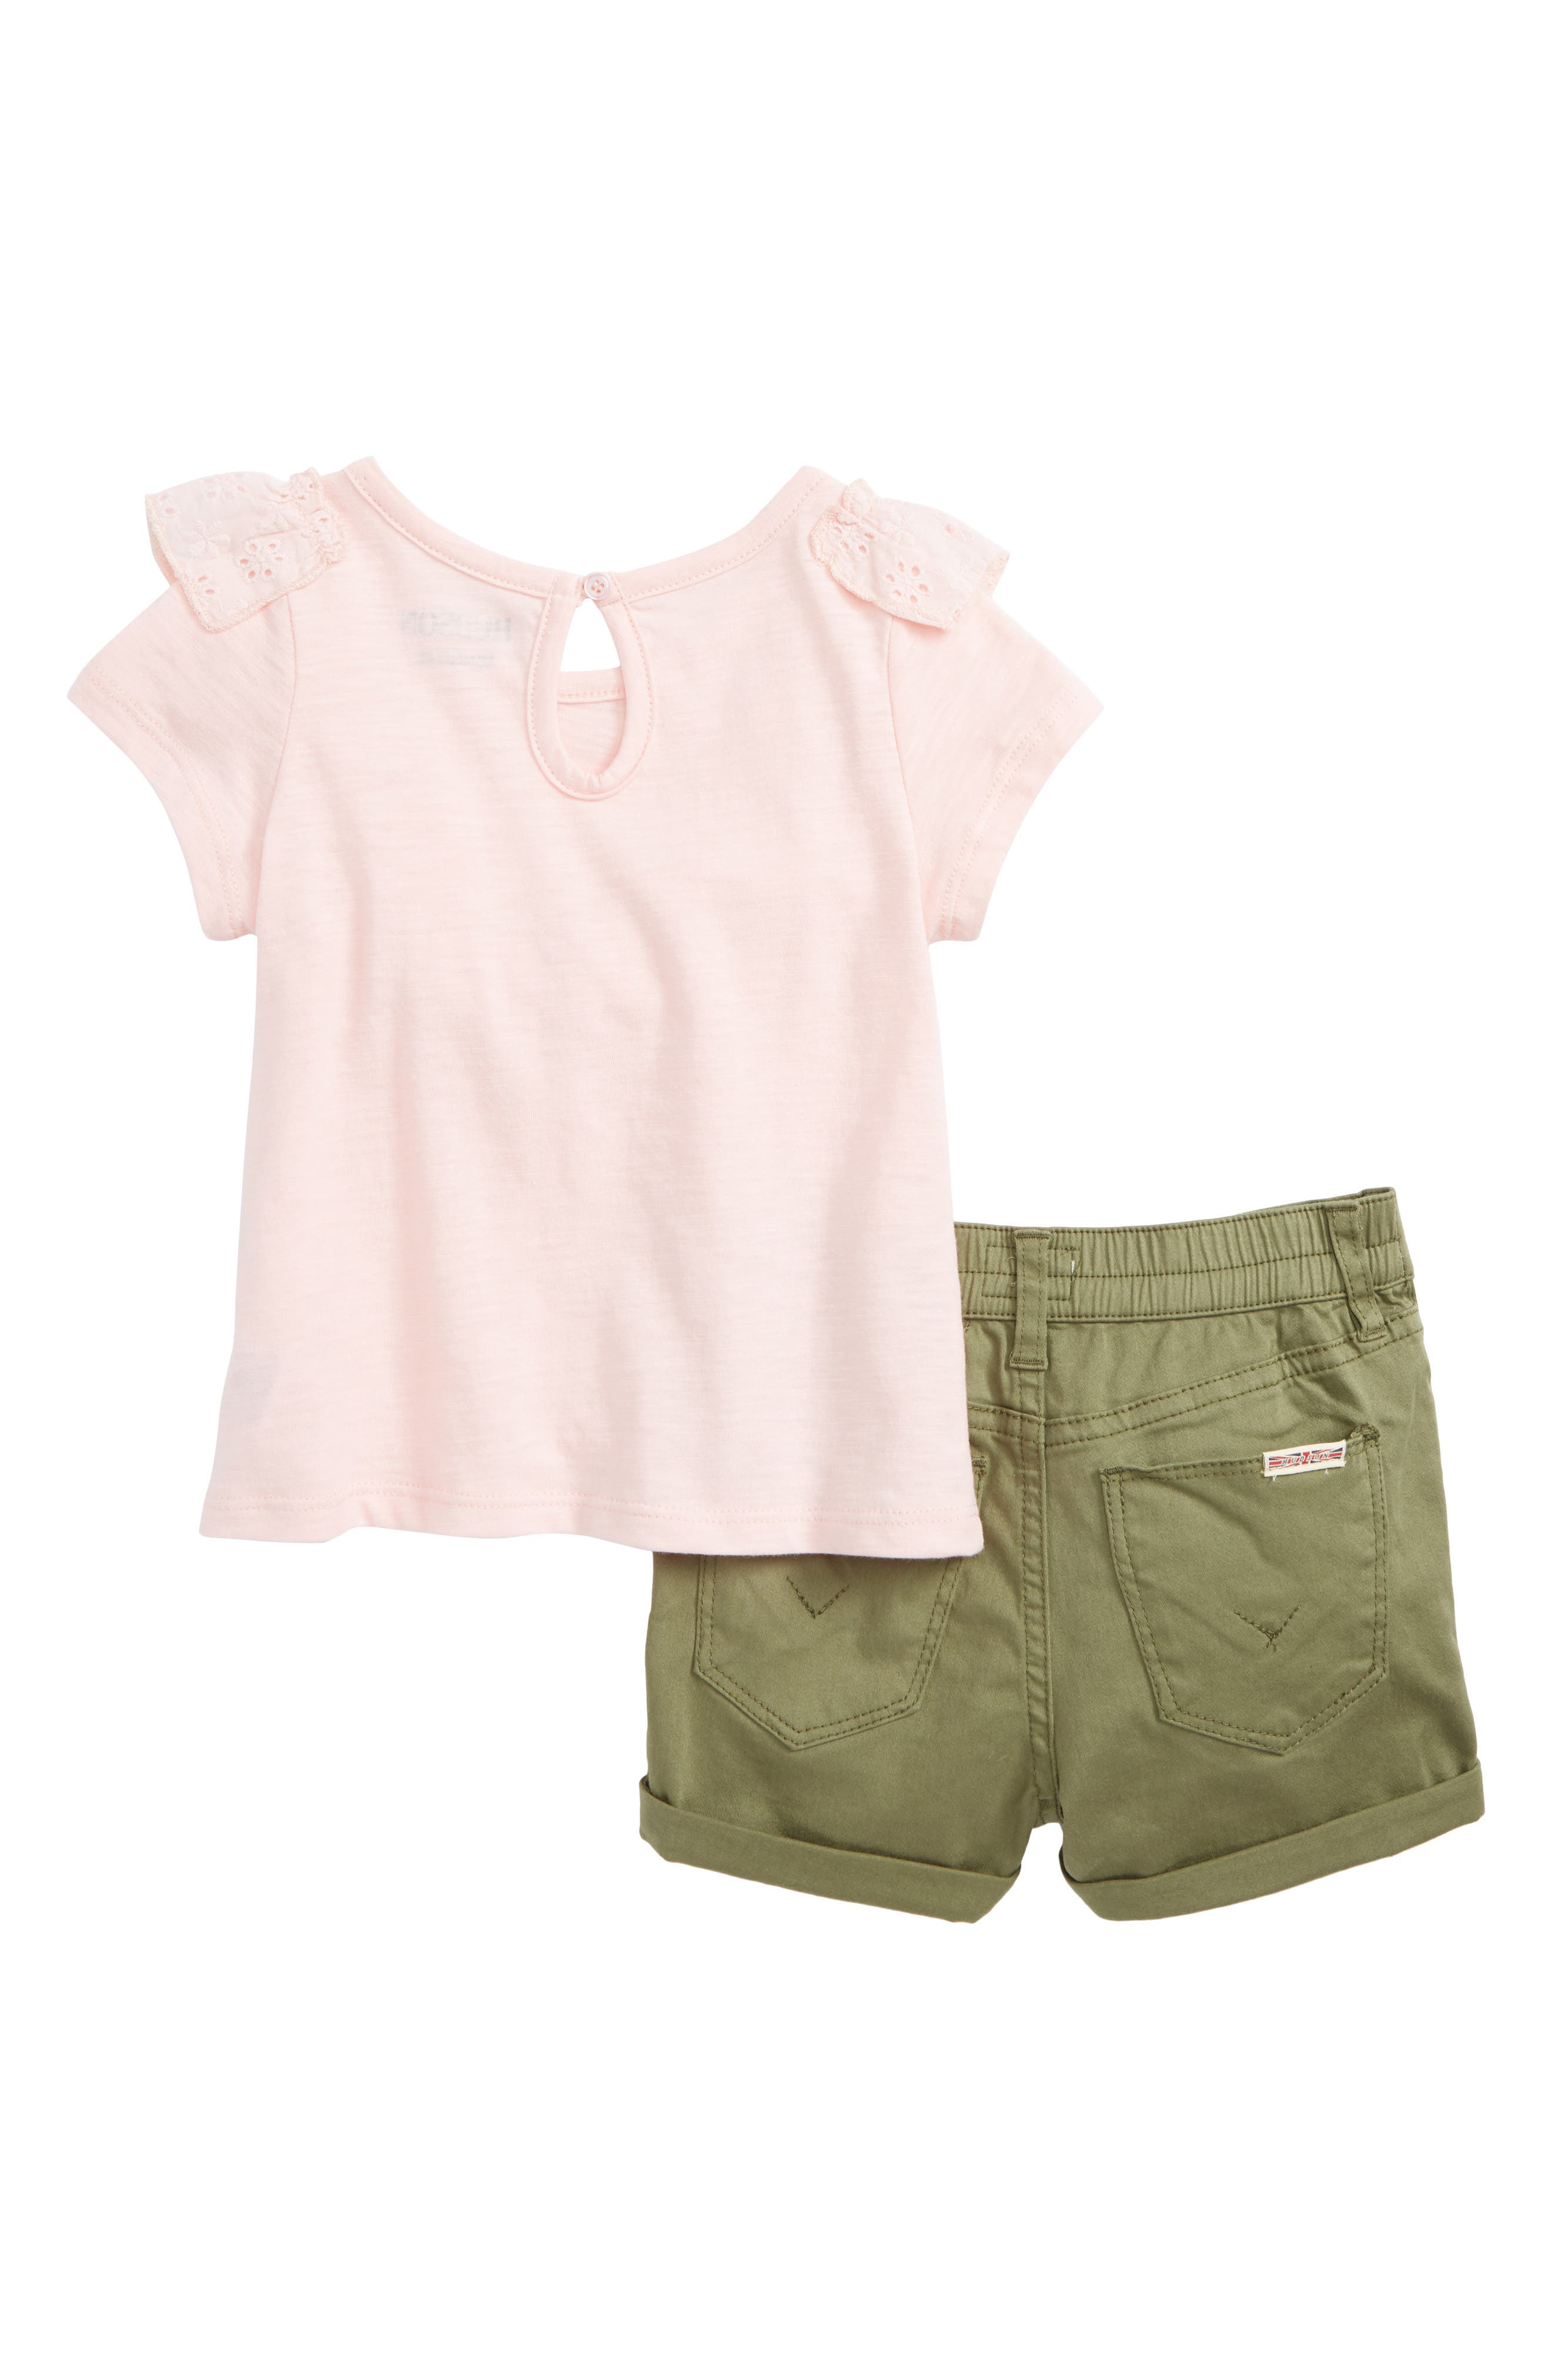 Eyelet Tee & Twill Shorts Set,                             Alternate thumbnail 2, color,                             Rose Blush